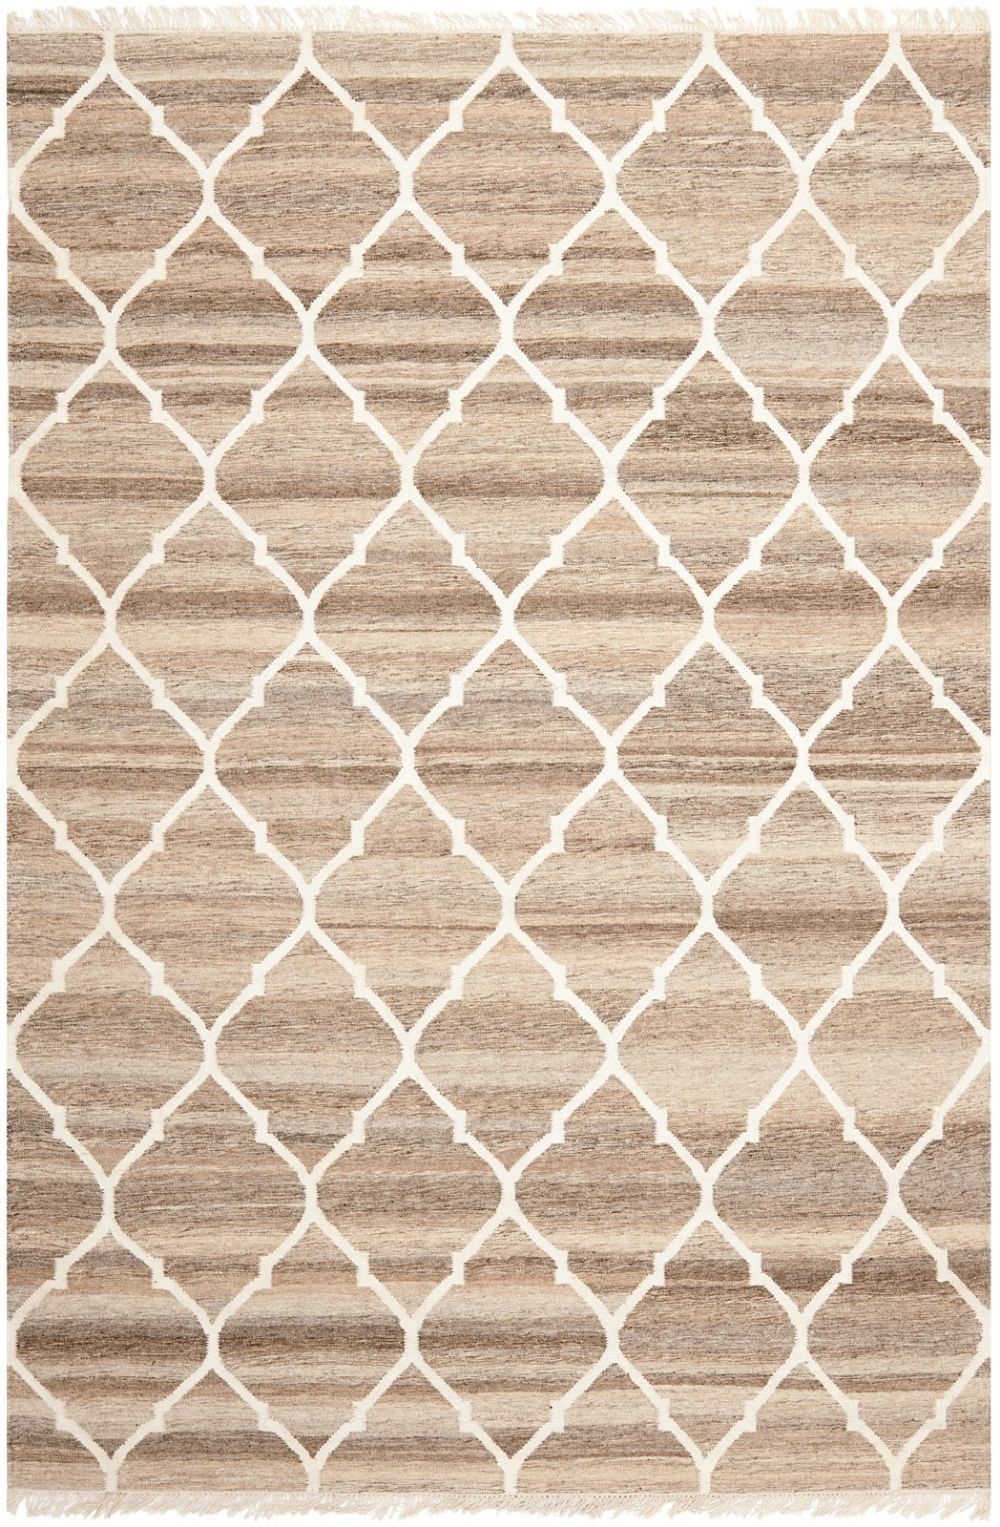 safavieh natural kilim contemporary area rug collection